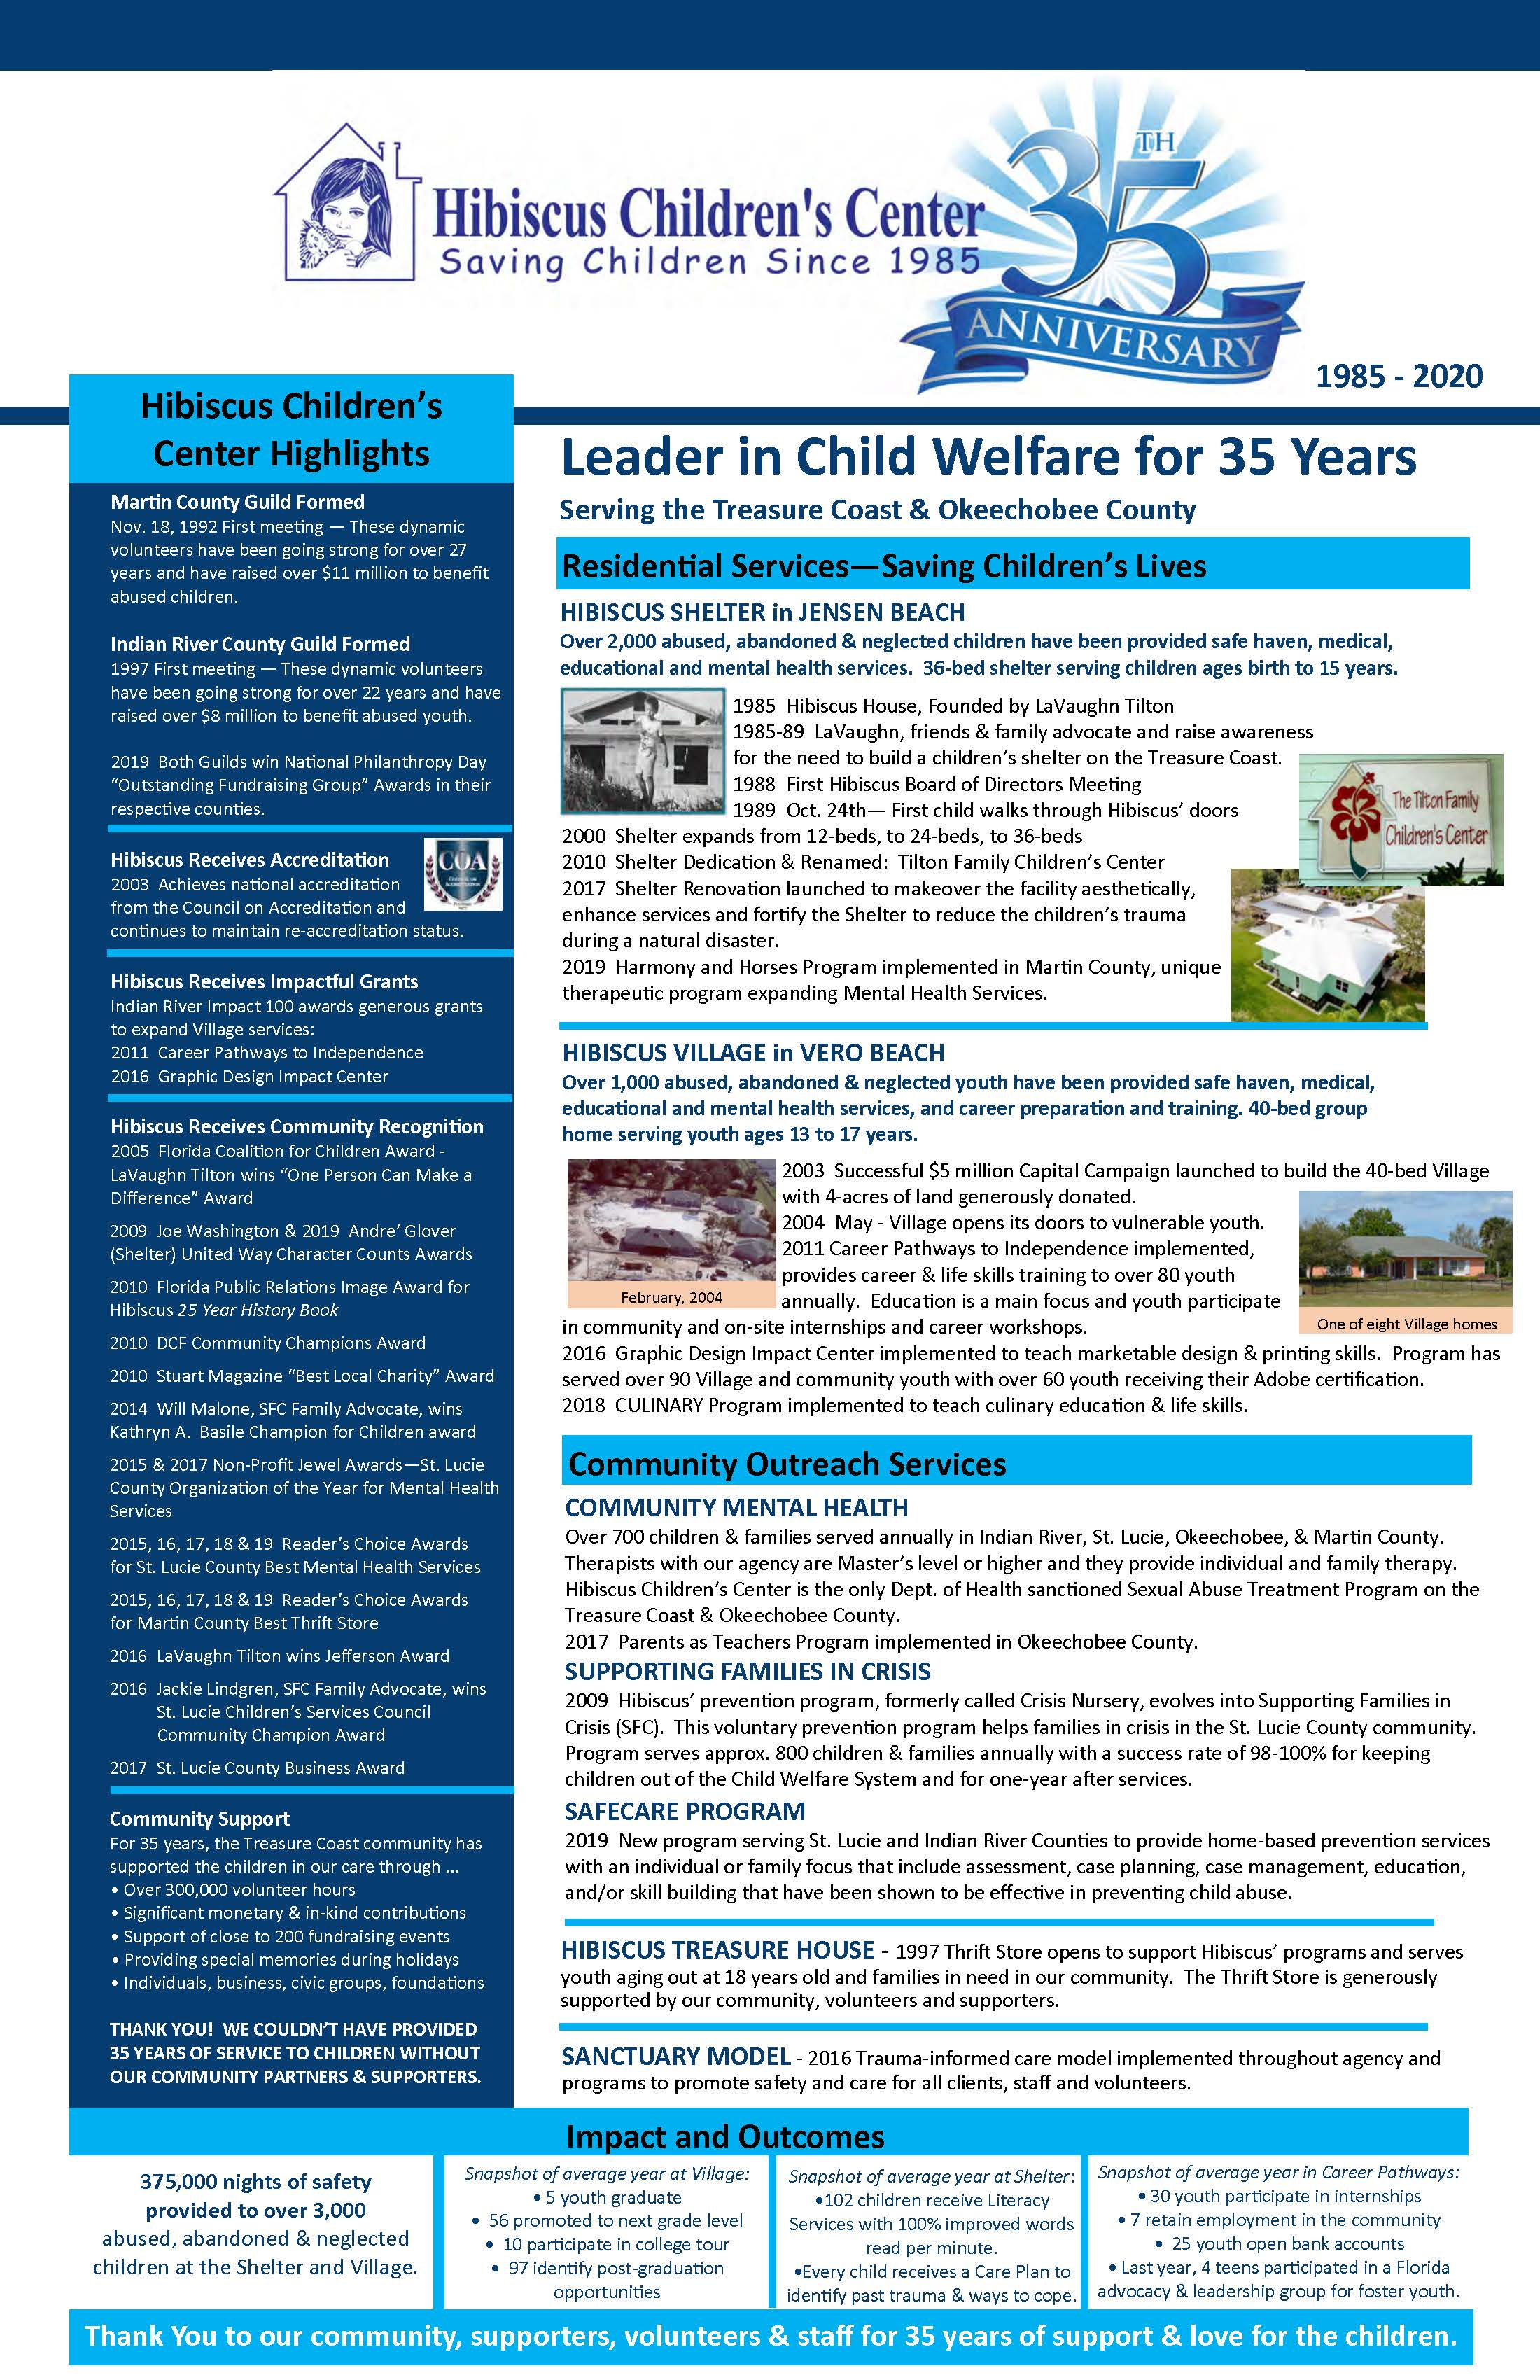 HCC 35 year anniversary newsletter